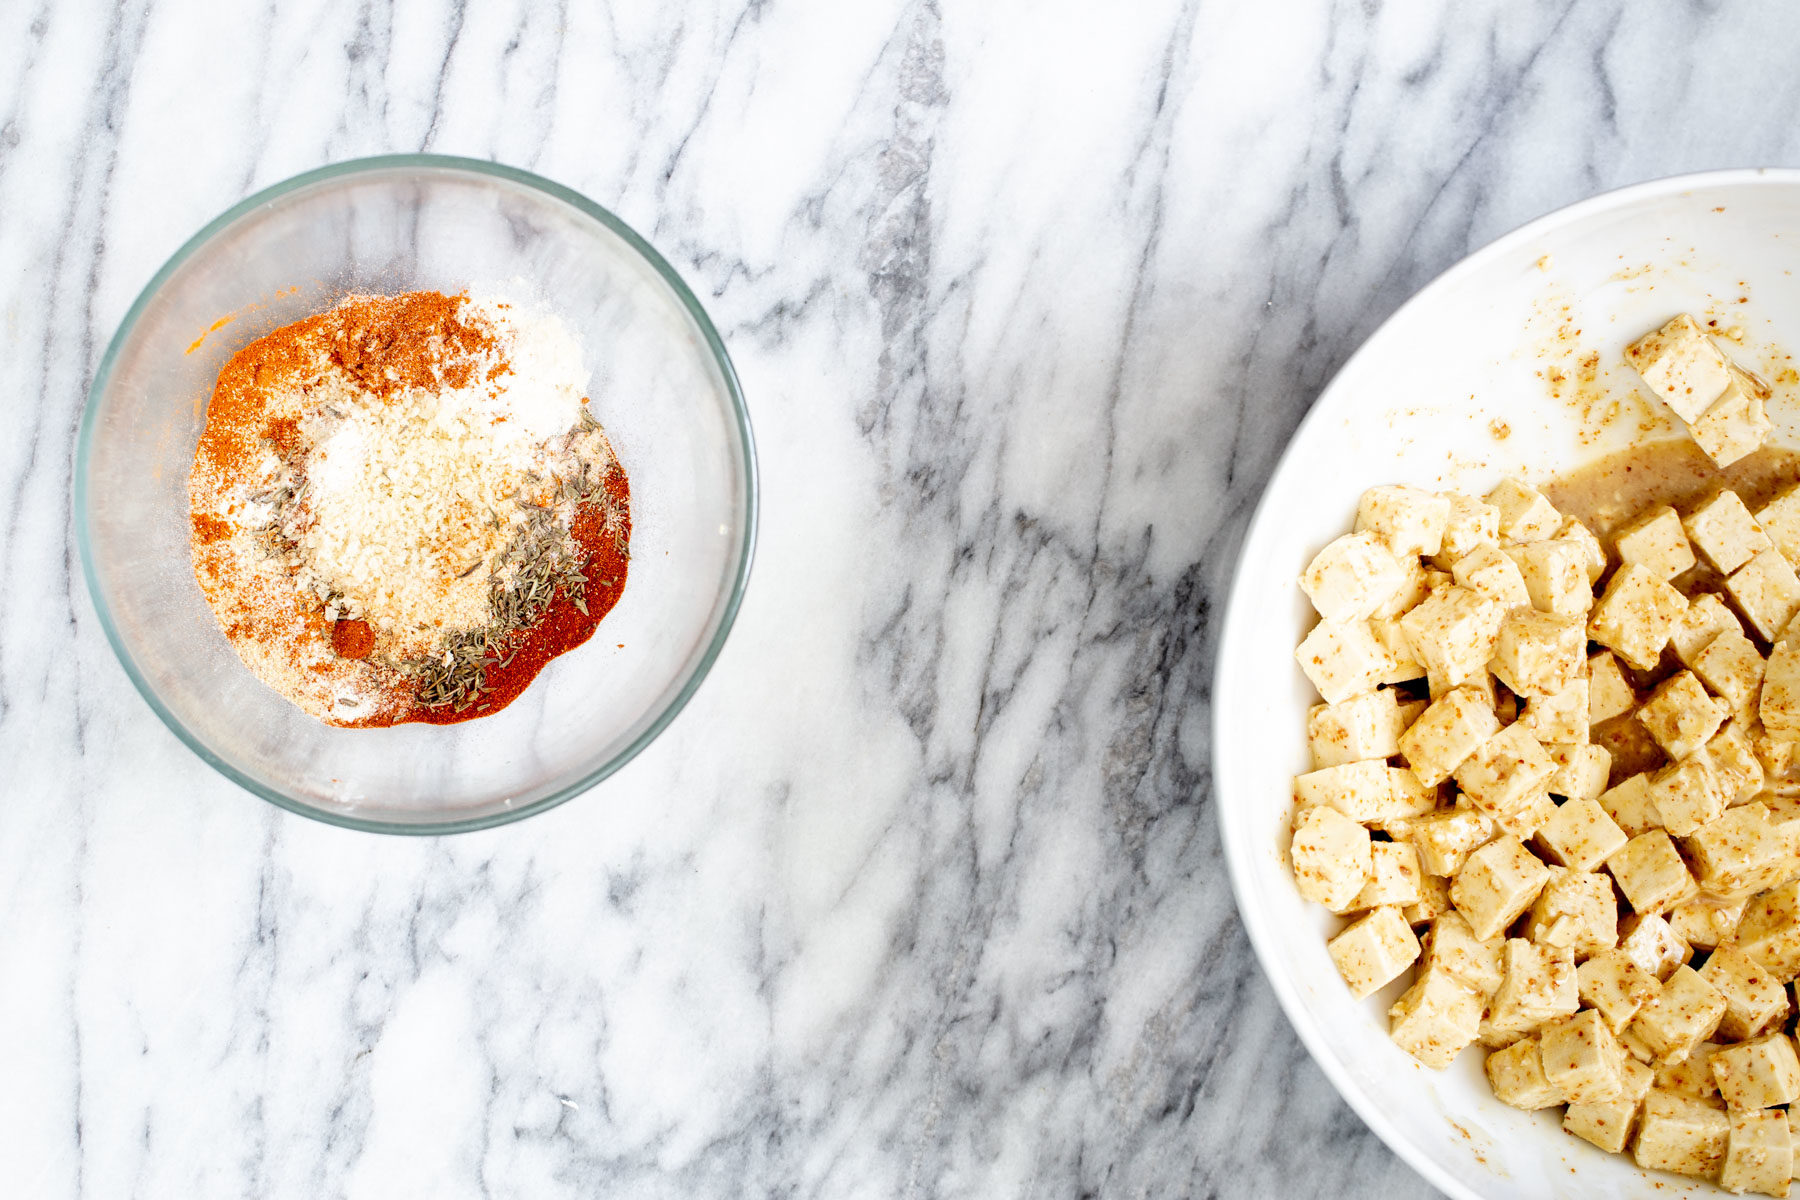 a bowl with marinated tofu and a bowl with spice mix on a marble countertop